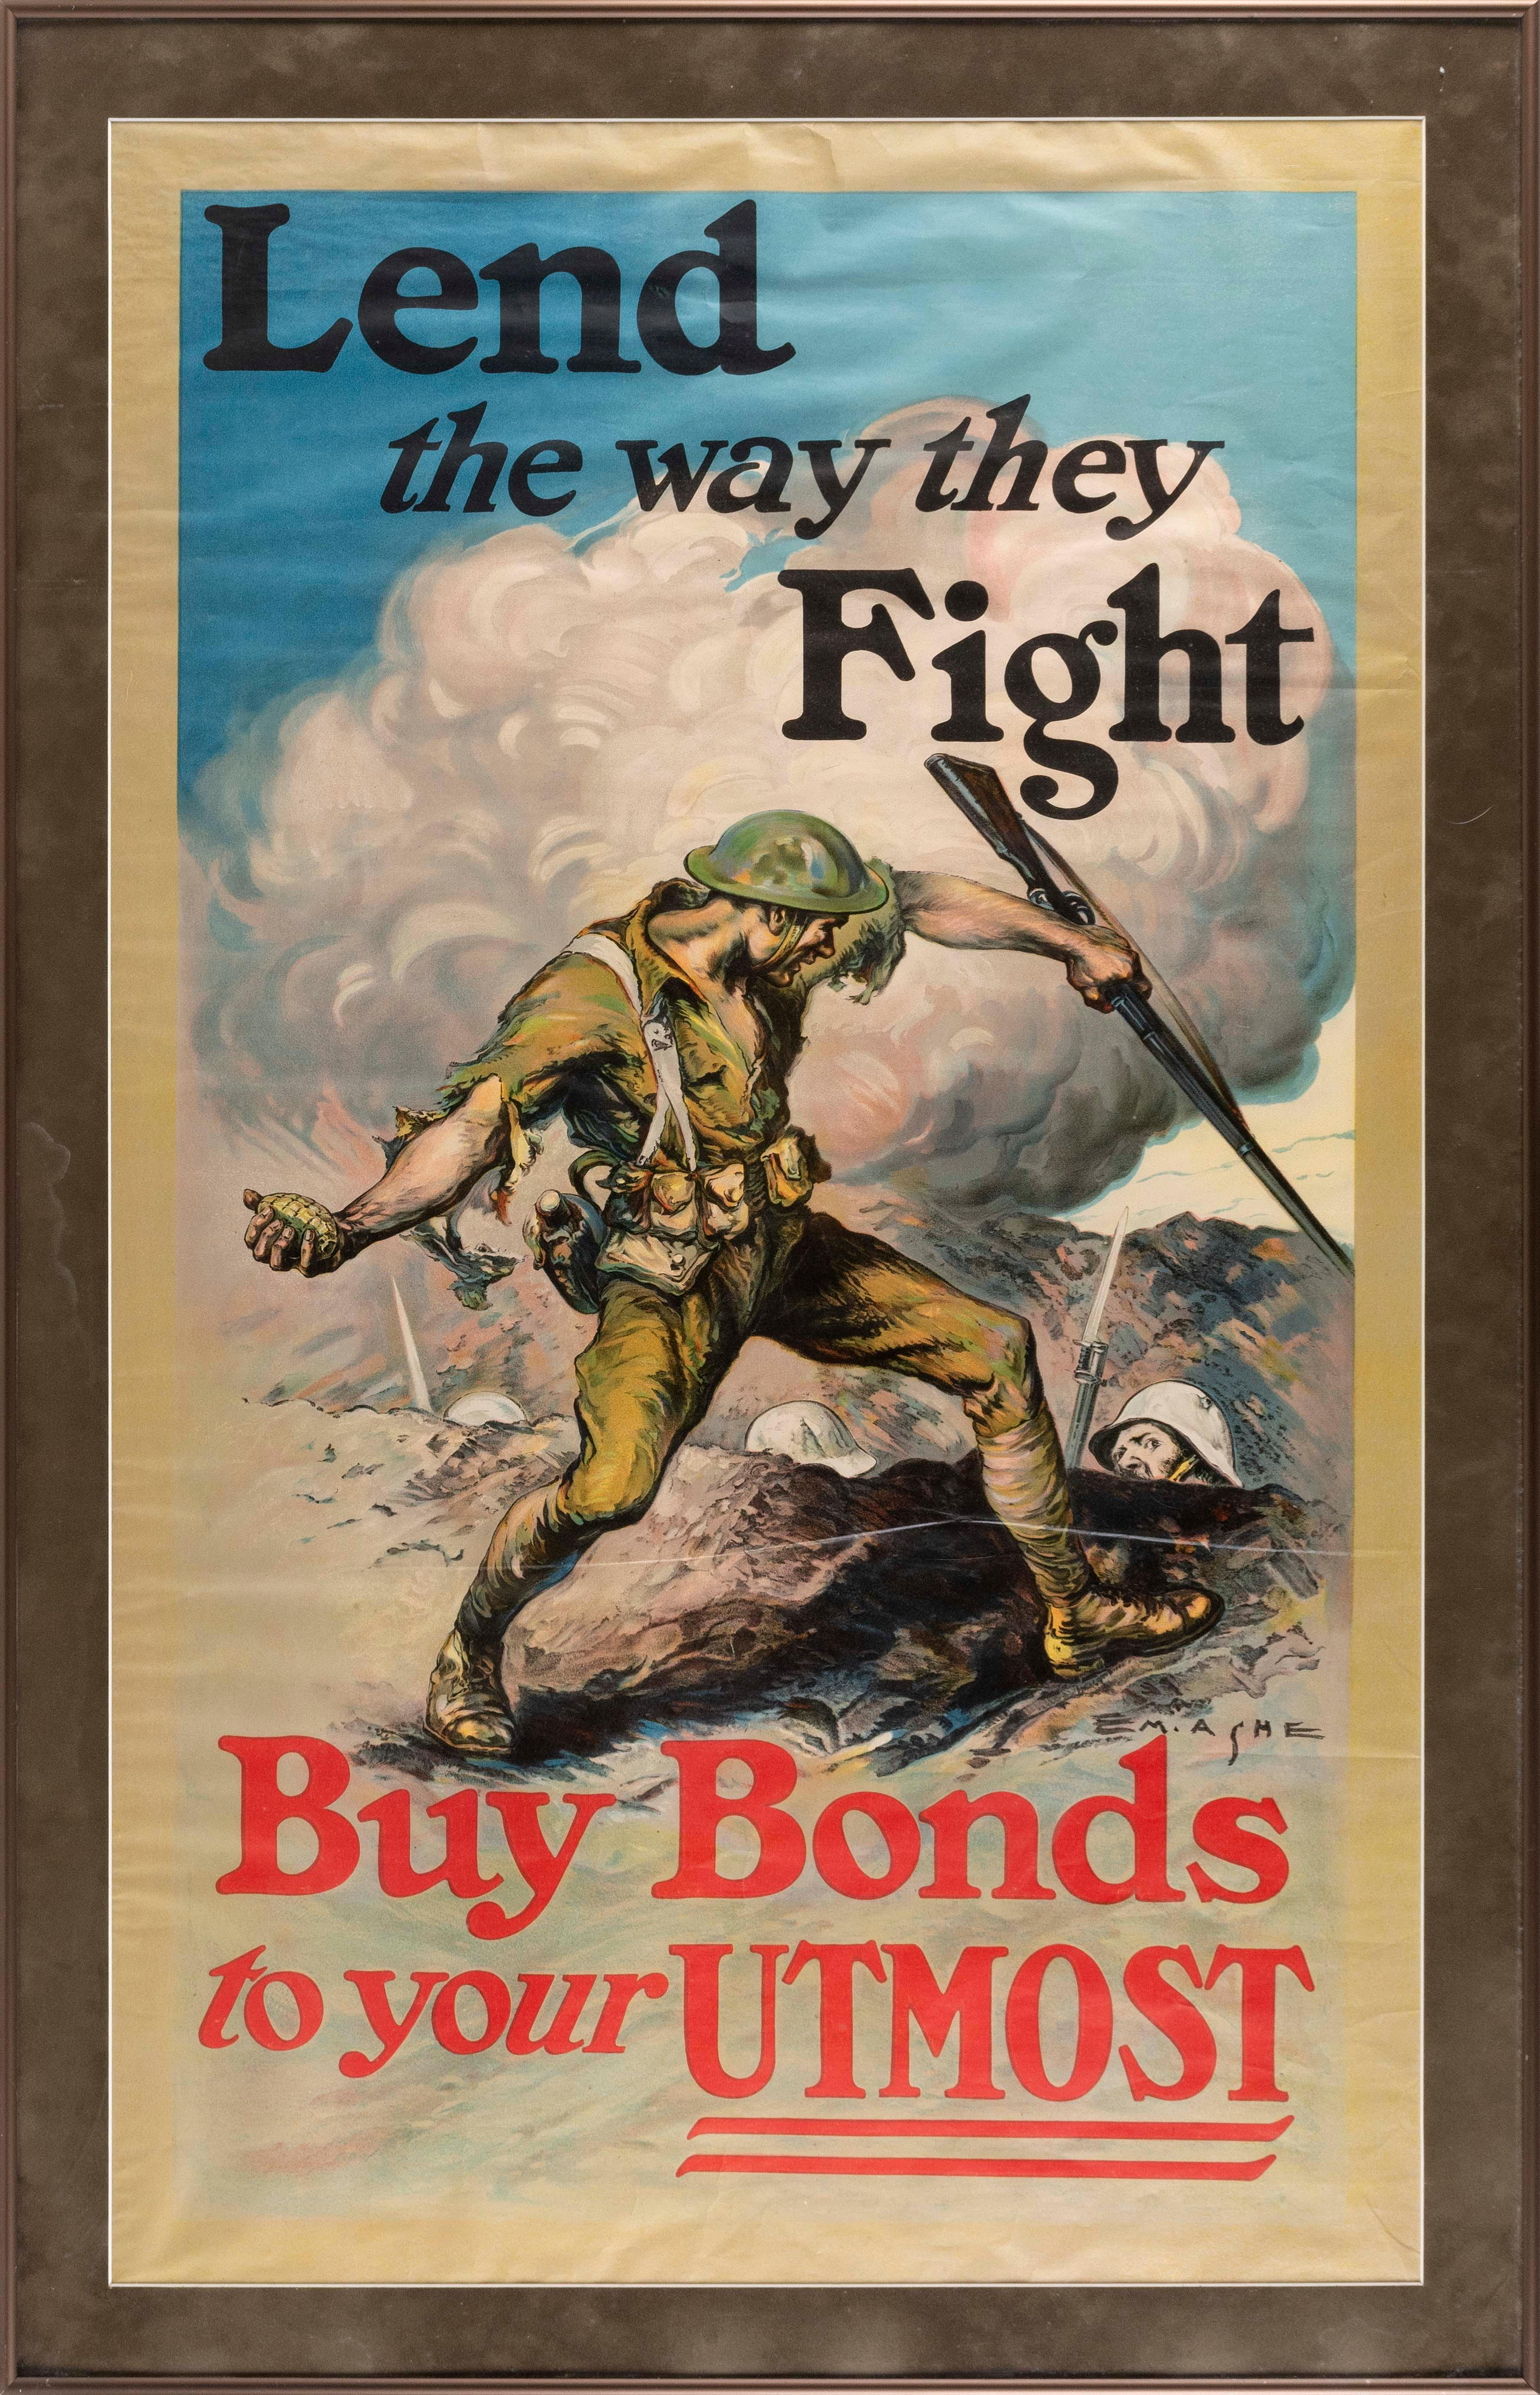 """""""LEND THE WAY THEY FIGHT BUY BONDS TO YOUR UTMOST"""" WORLD WAR I POSTER By E.M. Ashe. Depicts an American soldier poised to throw a gr..."""